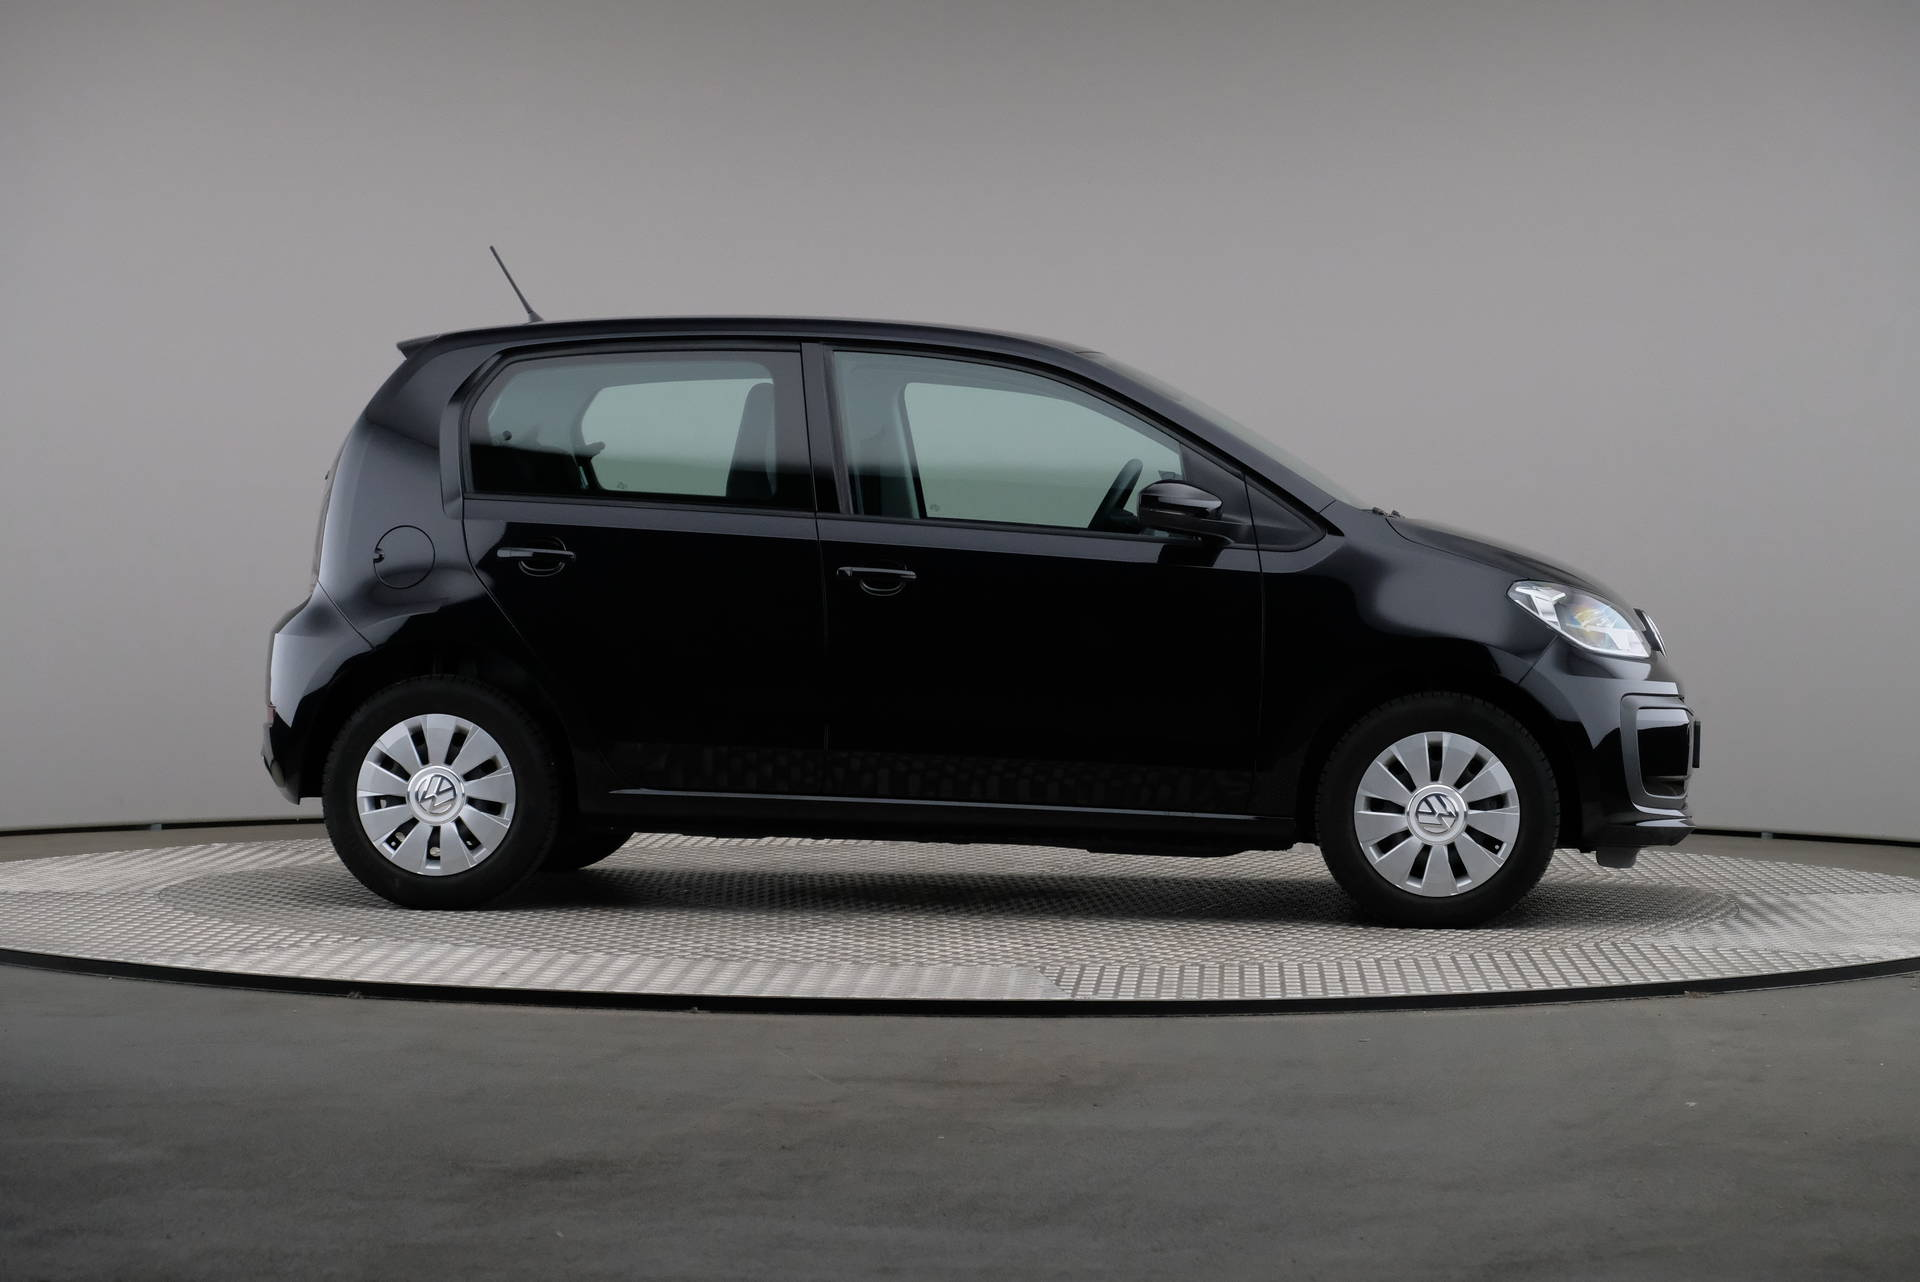 Volkswagen up! 1.0 44kW Move up! BlueMotion Technology, Airconditioning, 360-image24